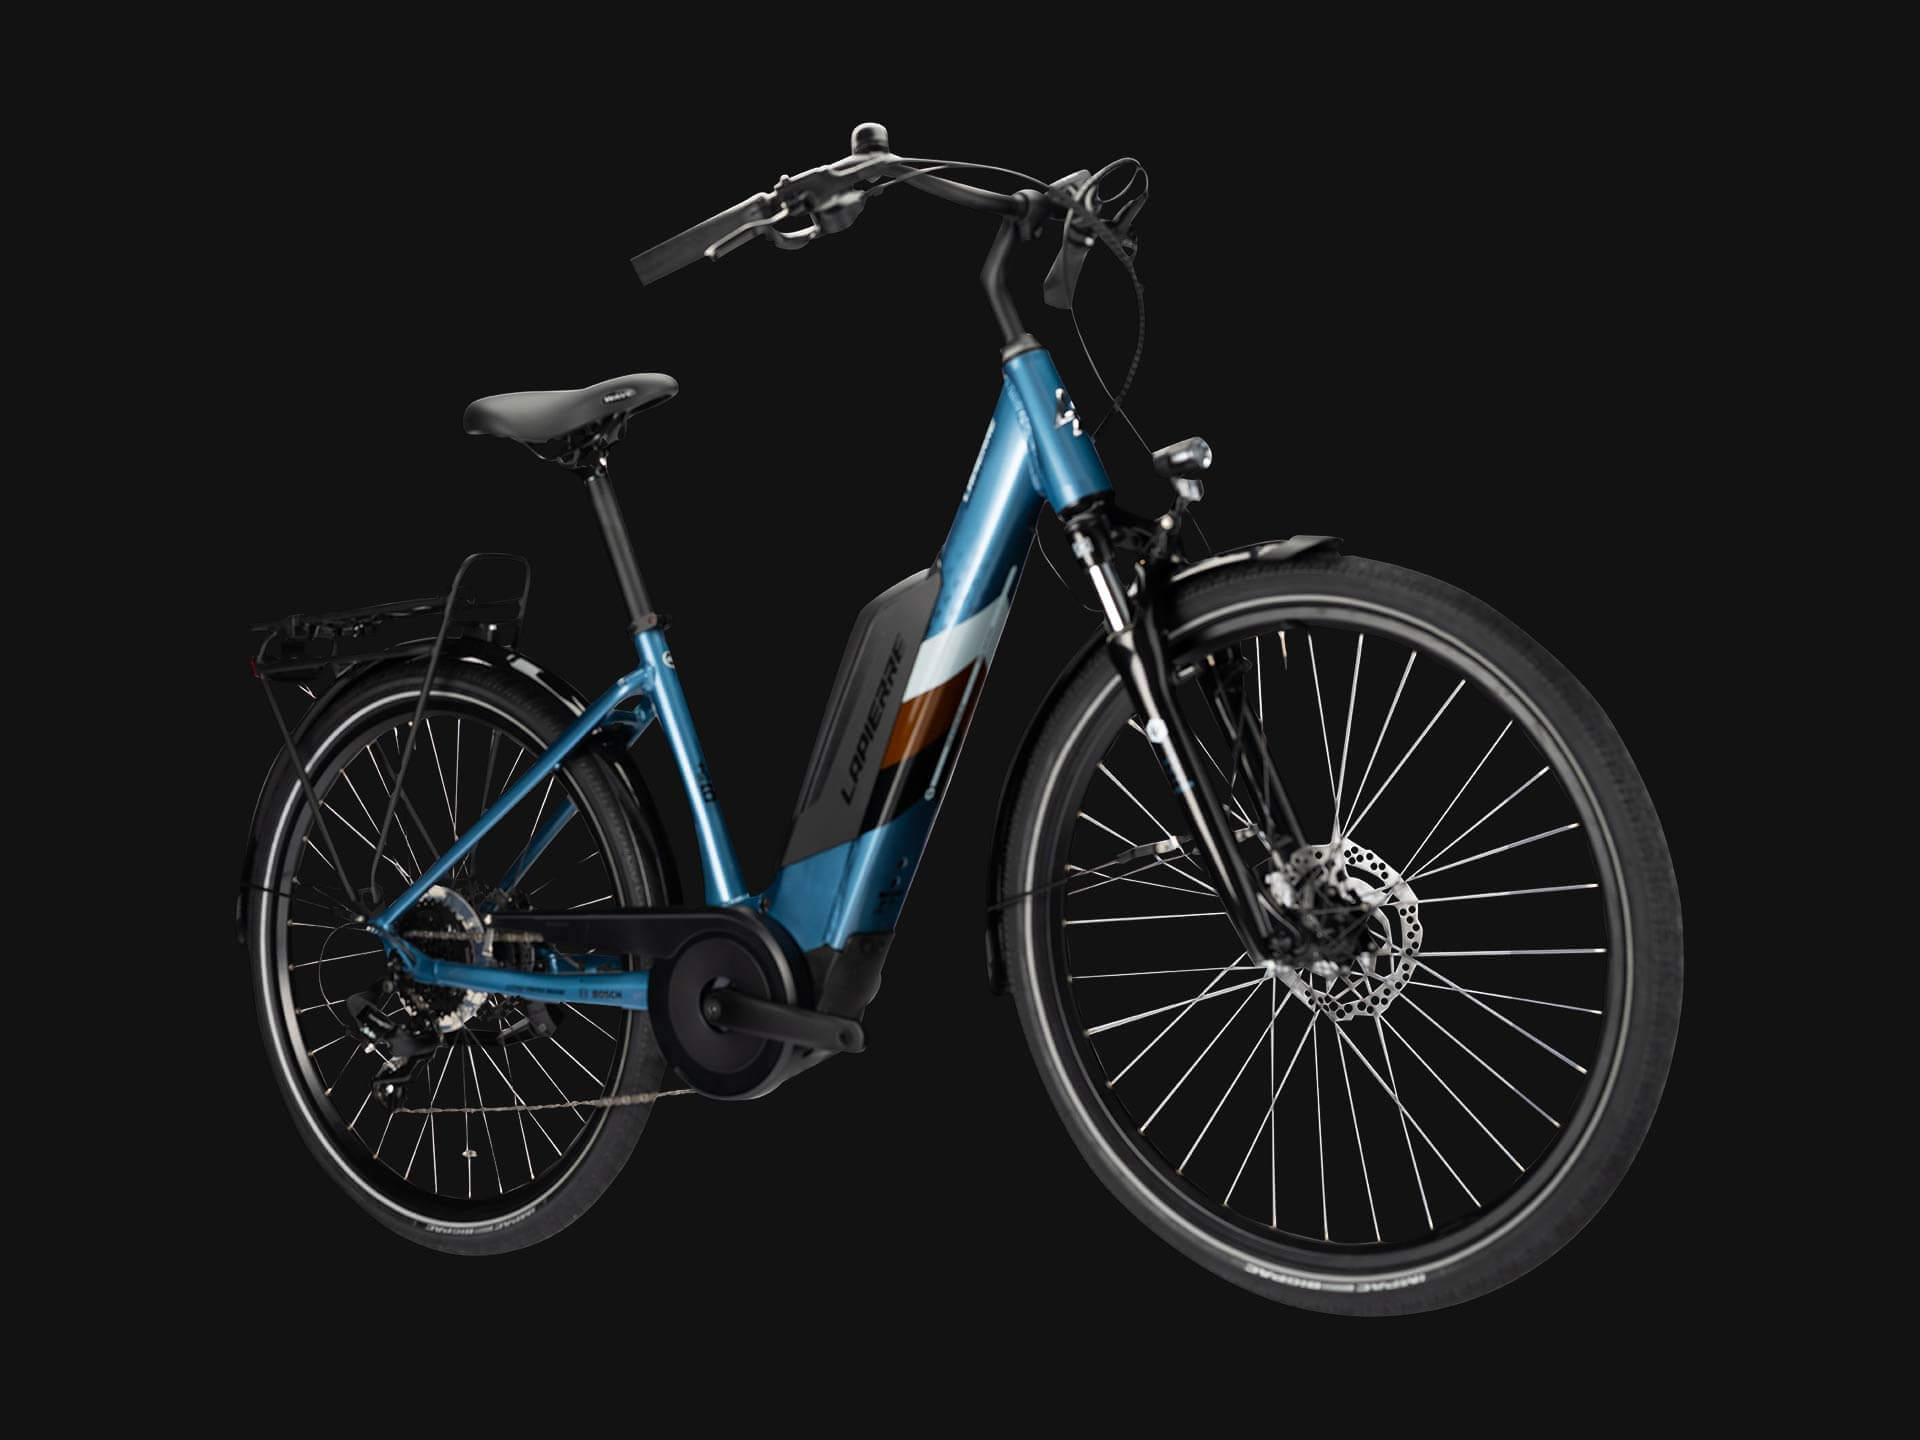 Lapierre Overvolt Urban 3.3 2021 Electric Urban Bike